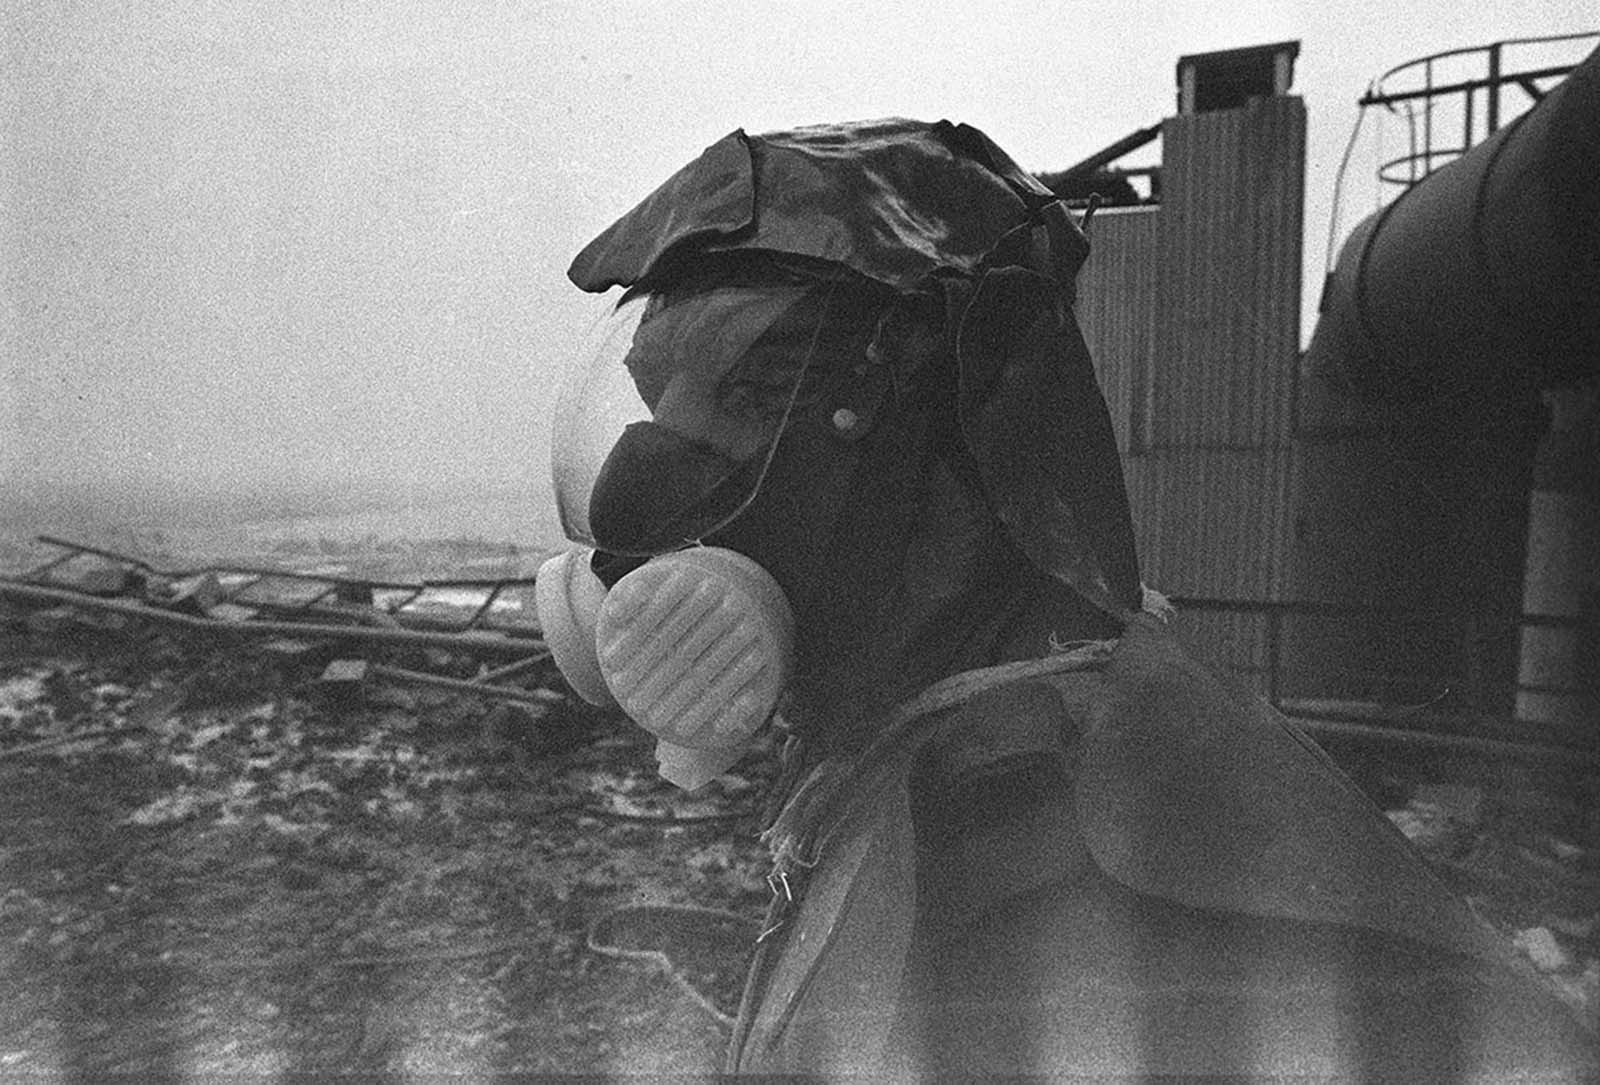 A liquidator, outfitted with handmade lead shielding on his head, works to clean the roof of reactor No. 3.